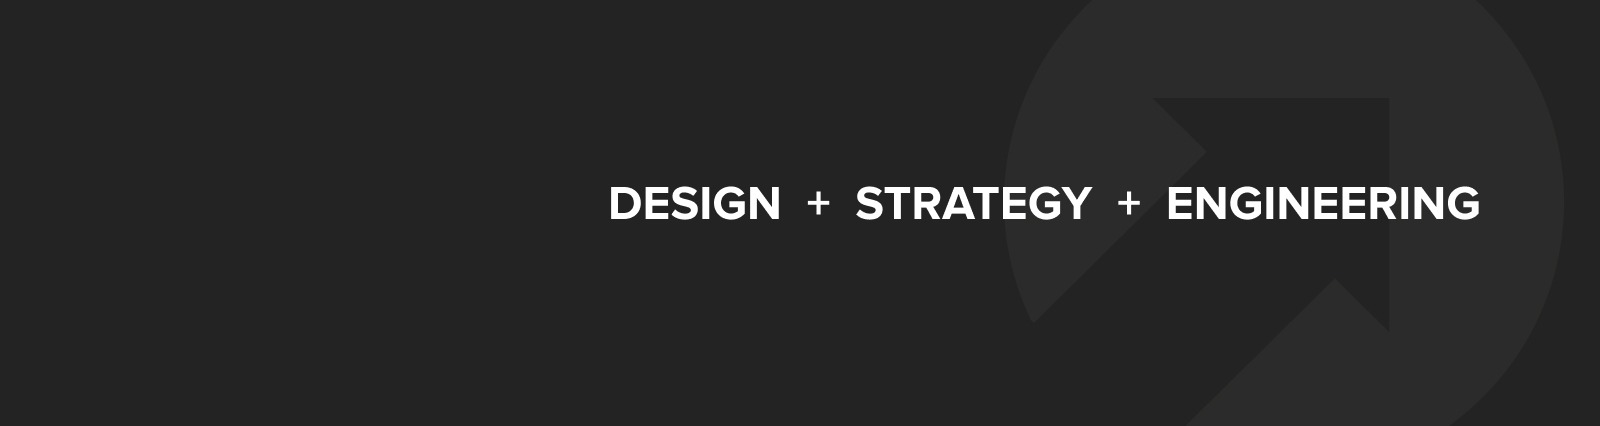 Design, Strategy, and Engineering